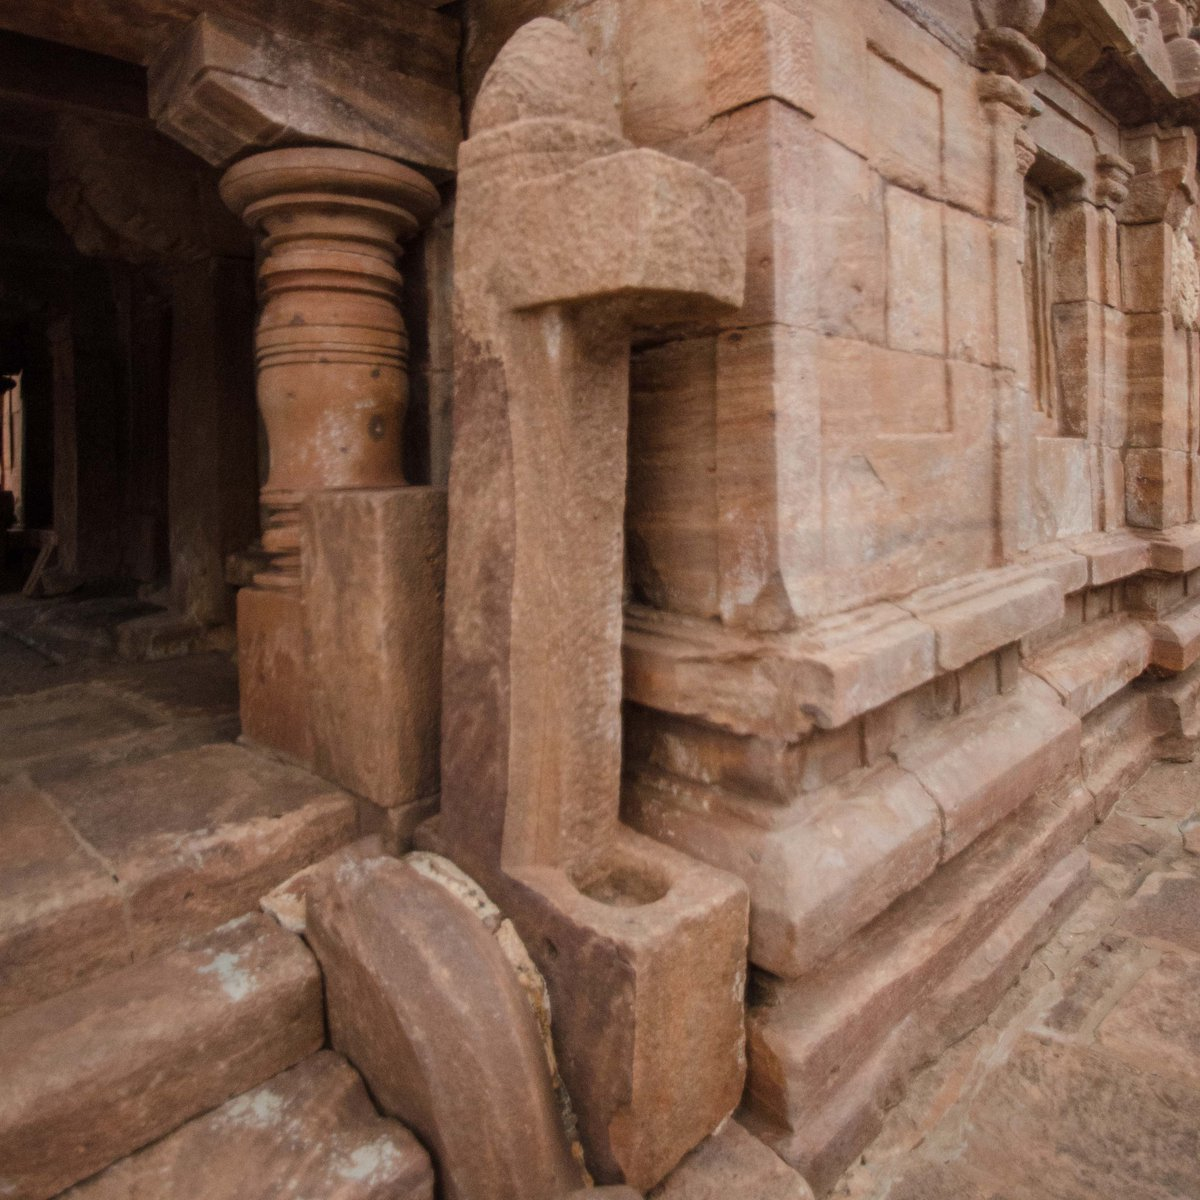 The entrance to this temple shows something important. Can you tell me what it is?  #Ancient #Temple #architecture #India #IncredibleIndia #heritage #History #ThursdayThoughts #Hindu #Hinduism #Archaeology #PraveenMohan